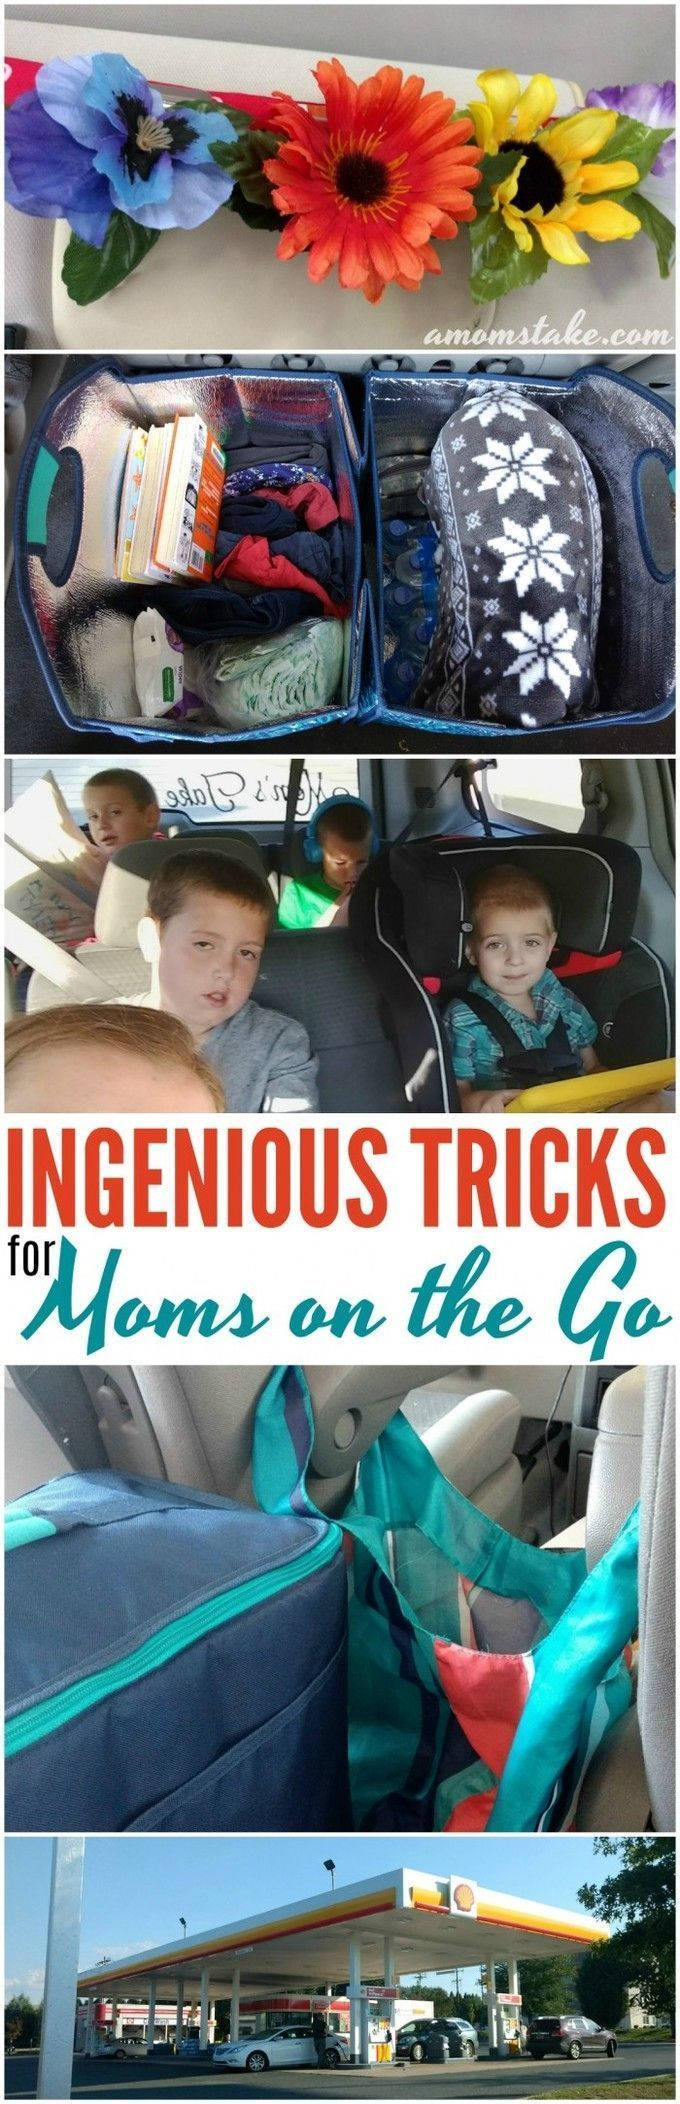 Busy mom's on the go you need these genius hacks and tricks for in the car! #ad #InstantGold #StayGolden #travel #kids #parenting #parentingtips #onthego #geniusmomtricks Busy mom's on the go you need these genius hacks and tricks for in the car! #ad #InstantGold #StayGolden #travel #kids #parenting #parentingtips #onthego #geniusmomtricks Busy mom's on the go you need these genius hacks and tricks for in the car! #ad #InstantGold #StayGolden #travel #kids #parenting #parentingtips #onthego #gen #geniusmomtricks